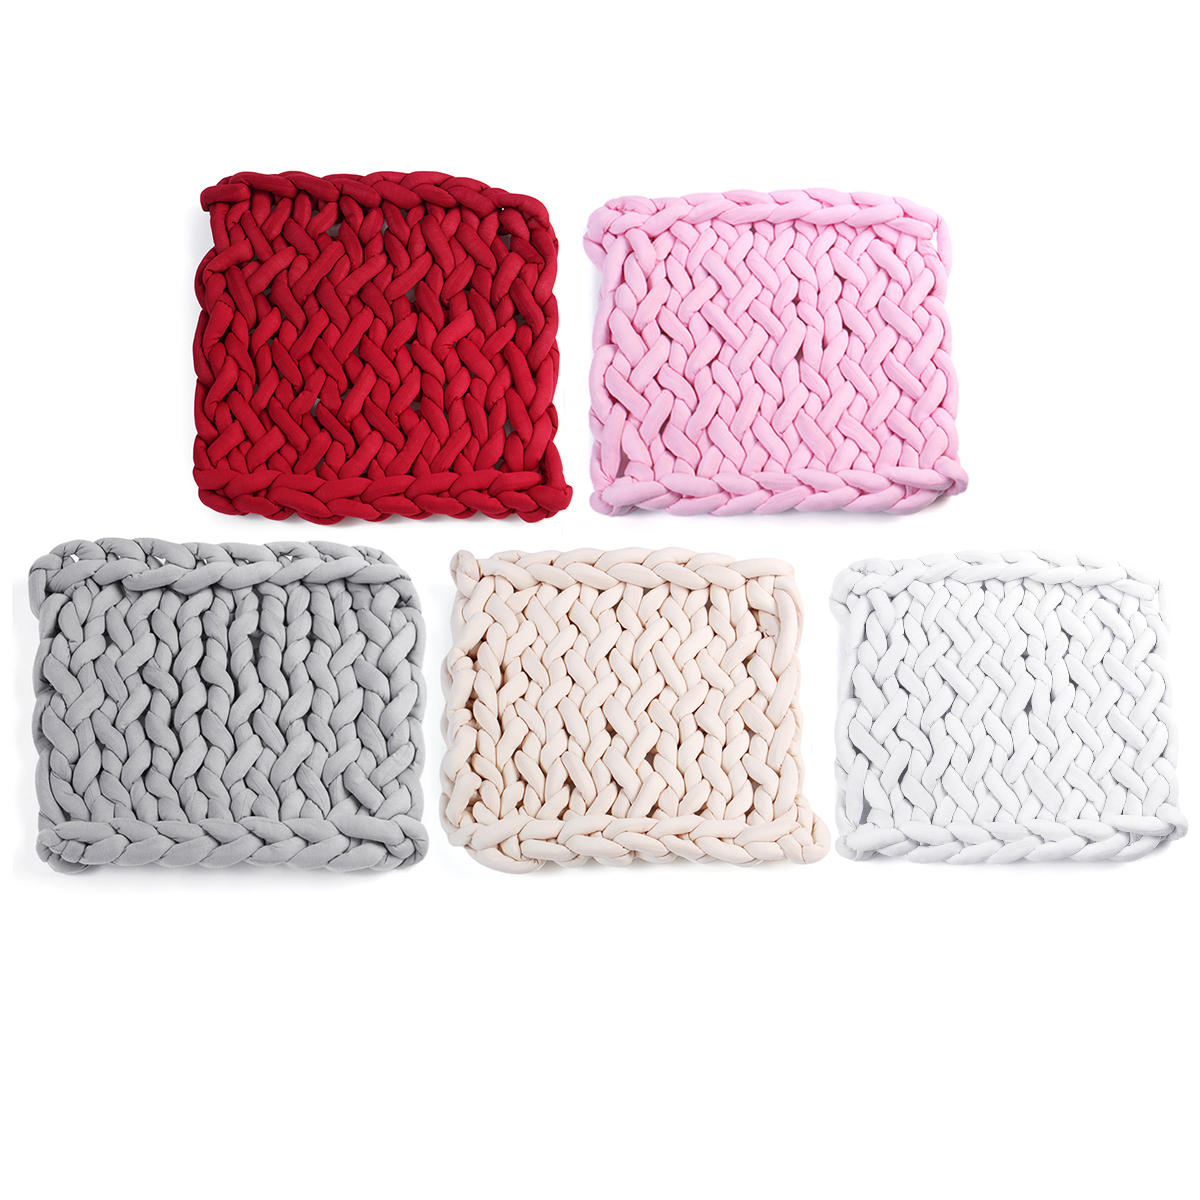 50 x 50cm Handmade Knitted Blanket Cotton Soft Washable Lint free Throw Multicolored Thick Thread Blankets